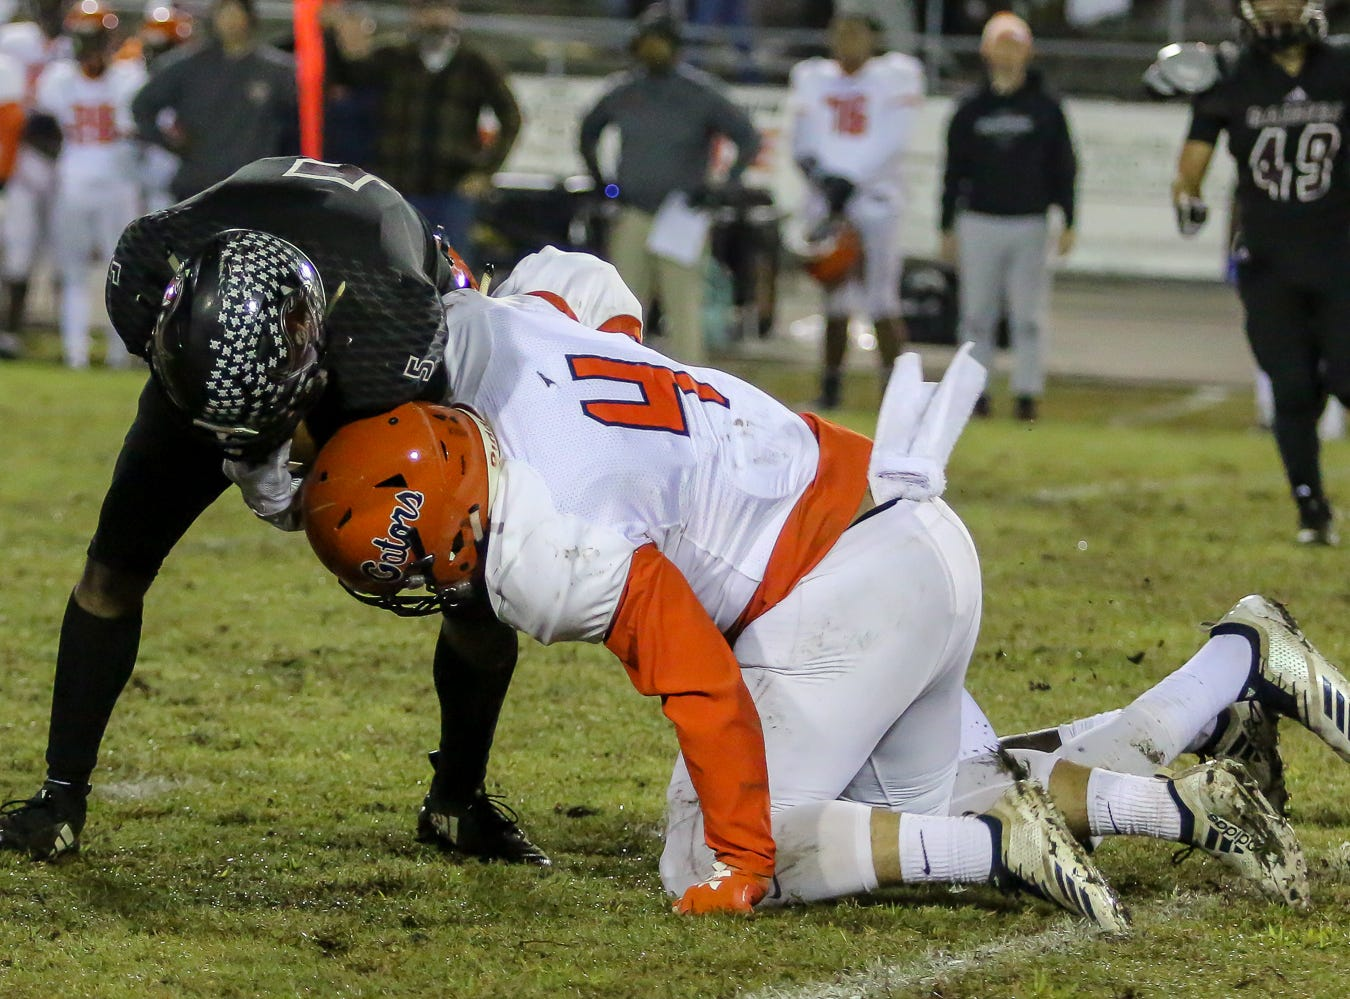 Escambia's Noah Lord (4) goes down lie to stop Navarre's Dante Wright (5) in the Region 1-6A Semifinal game at Navarre High School on Friday, November 16, 2018.